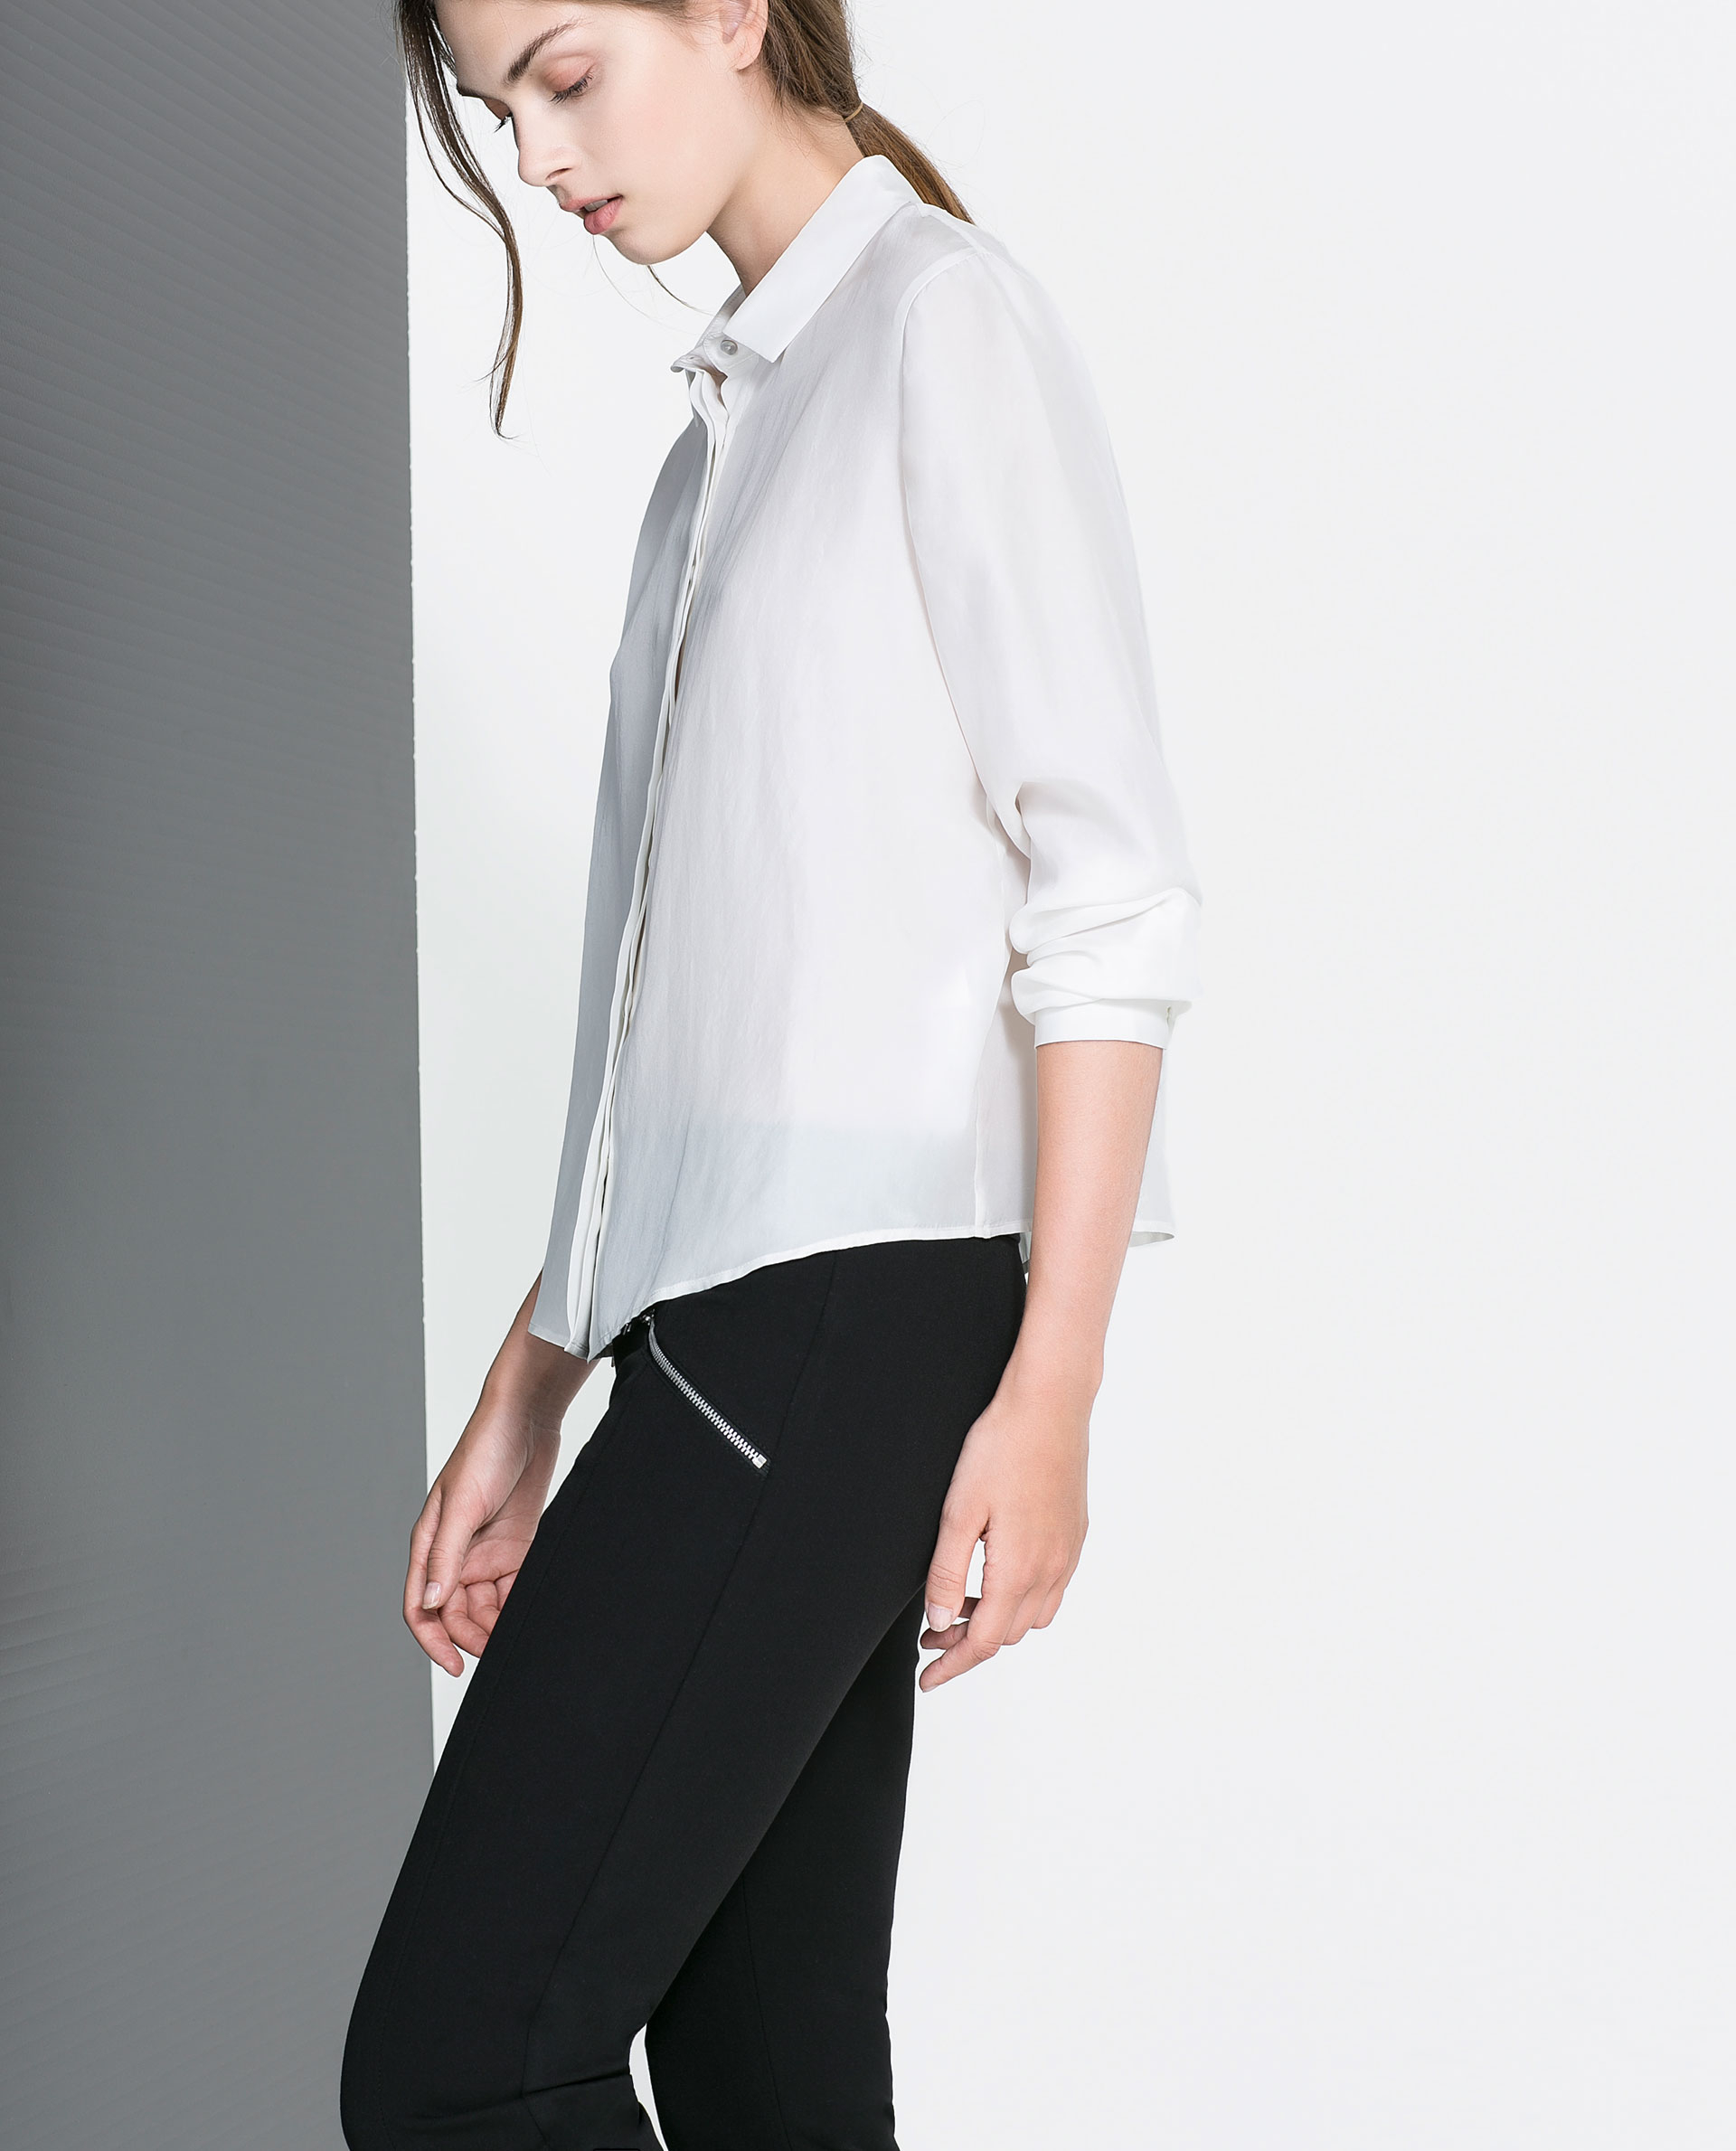 Zara Ladies Blouse 42